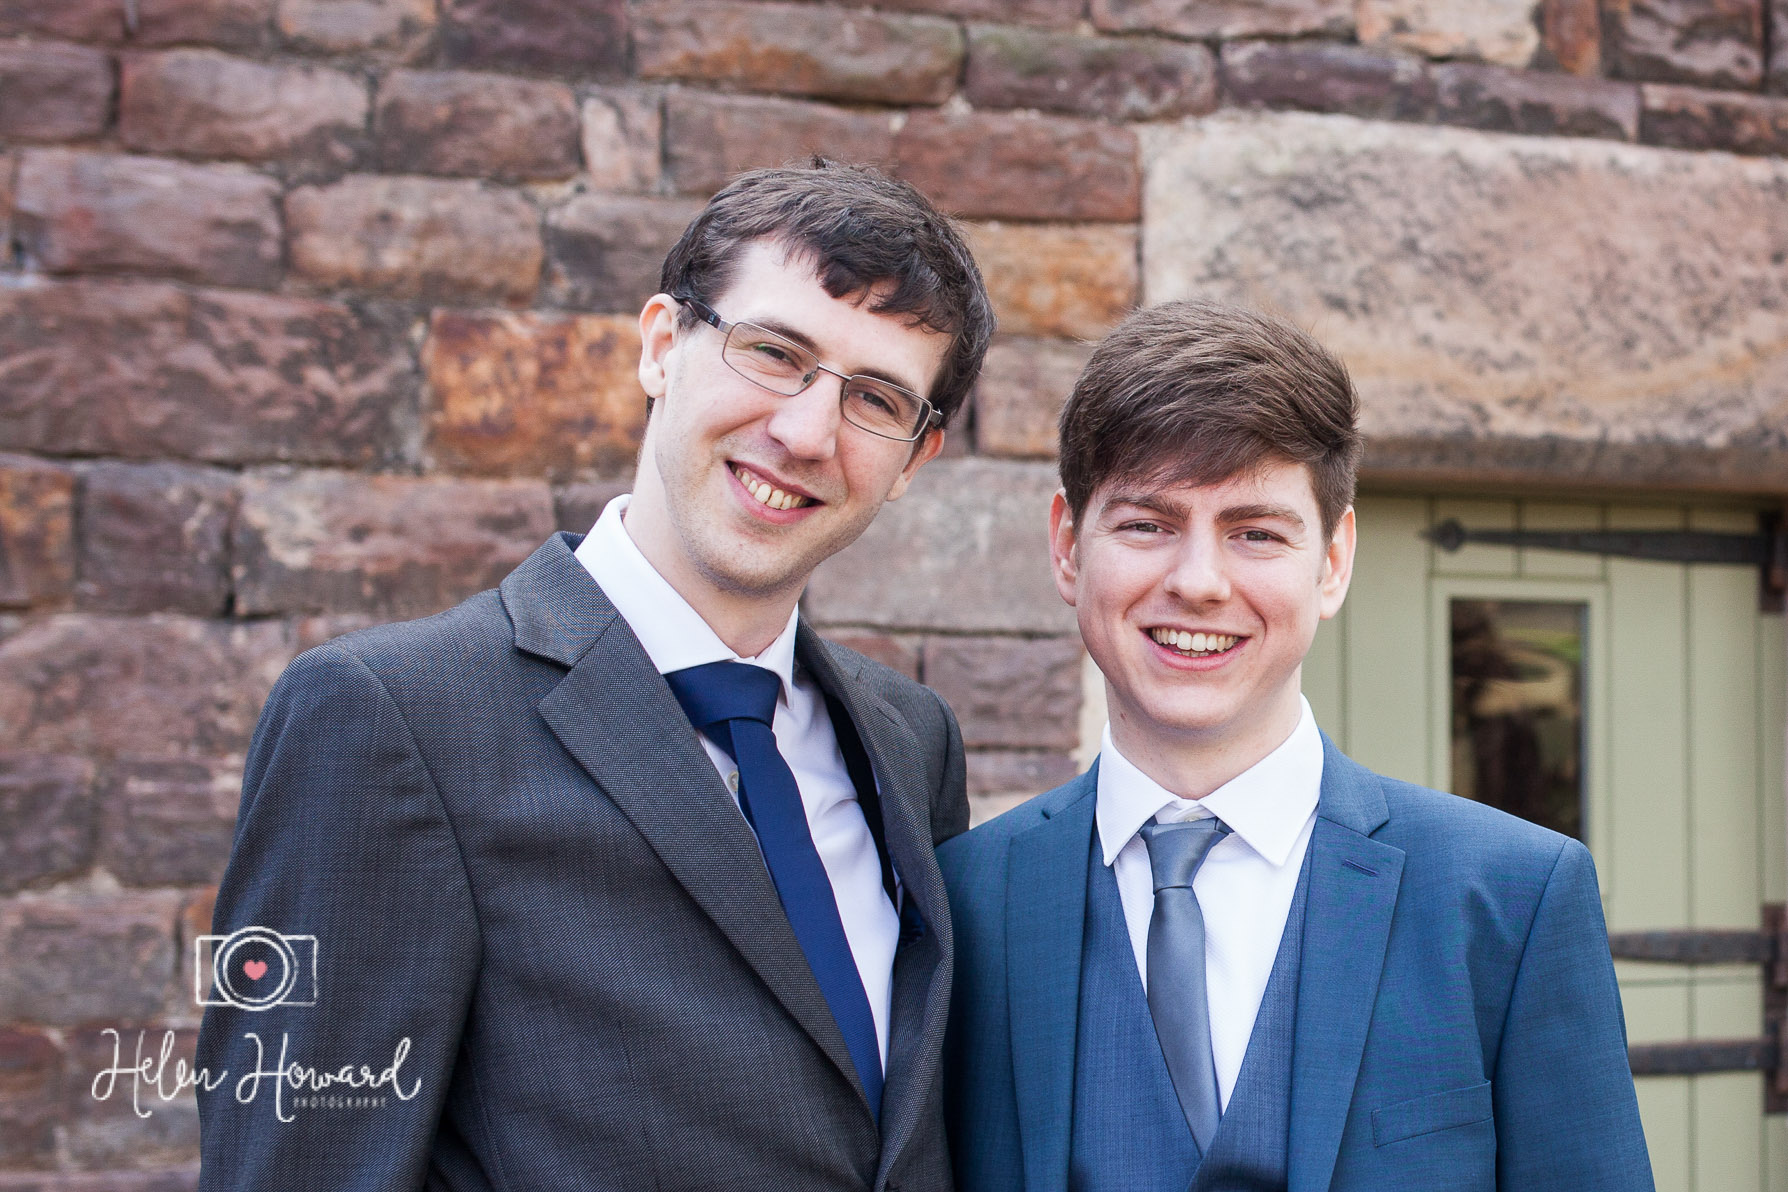 A Groom and his best man